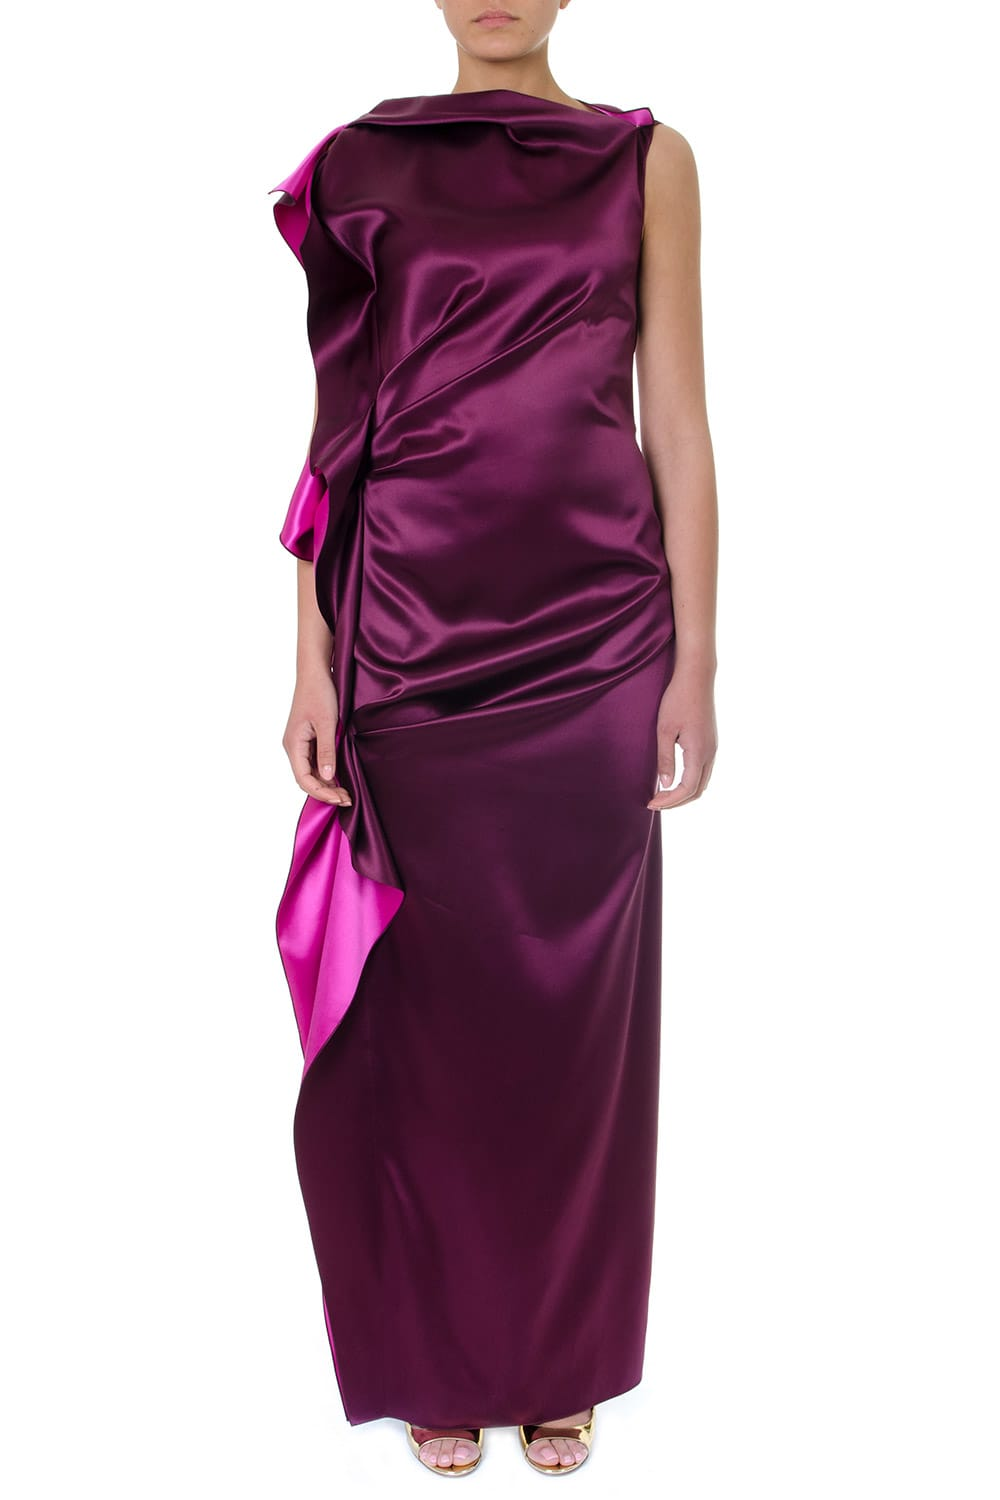 Photo of  Lanvin Long Cut Fuxia Silk Rouches Dress- shop Lanvin Dresses online sales